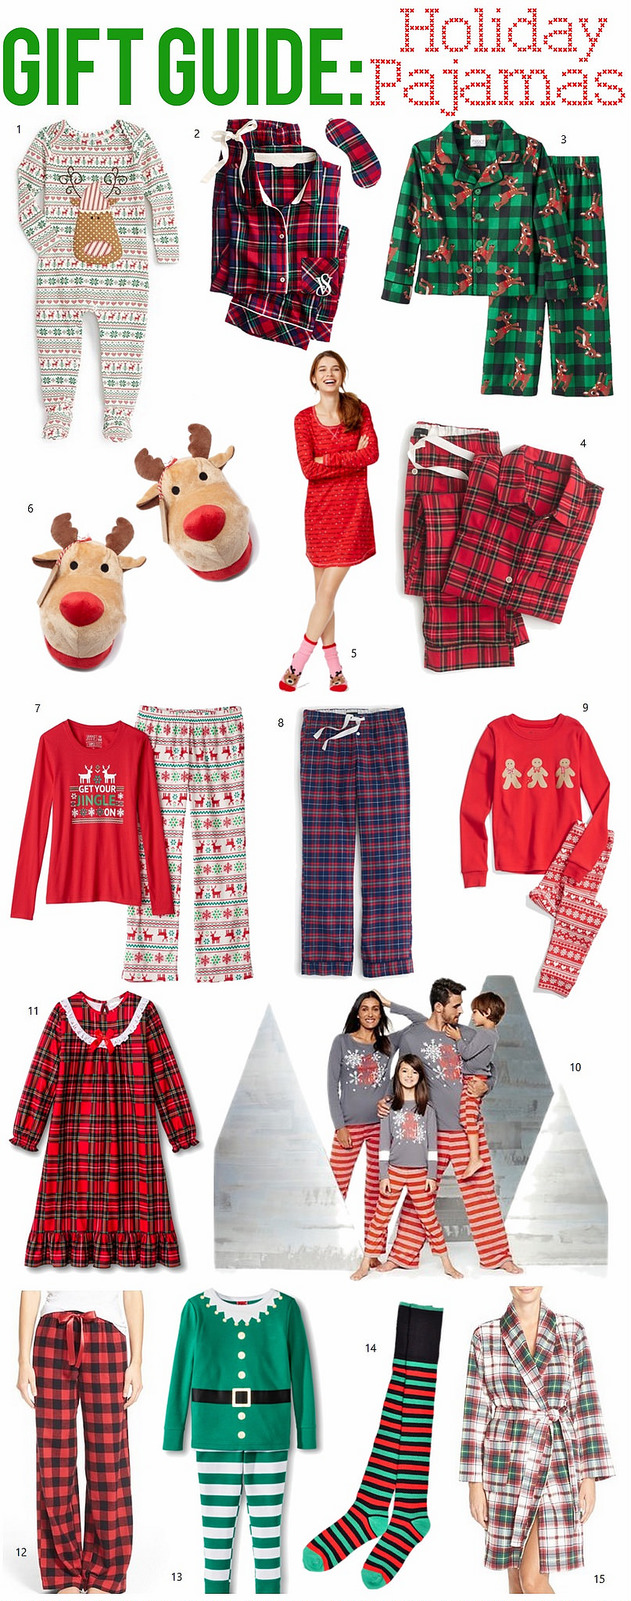 Gift Guide: Holiday Pajamas